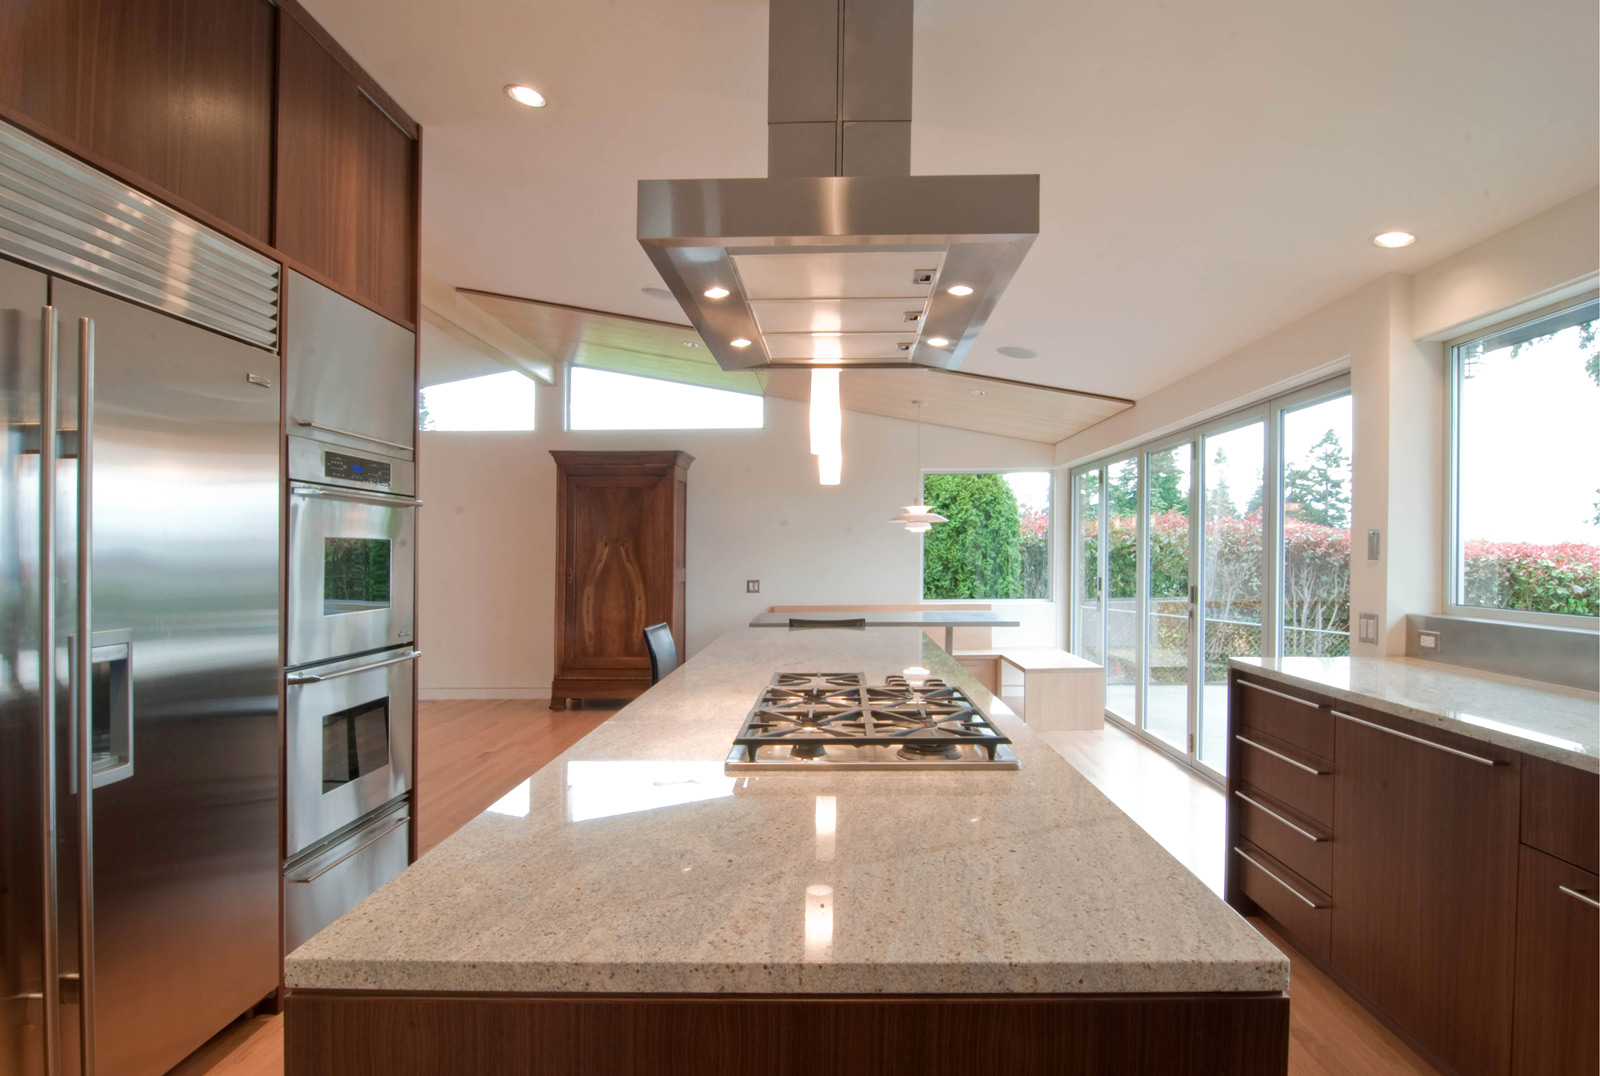 Design Strategies For Kitchen Hood Venting BUILD Blog - Kitchen hood design